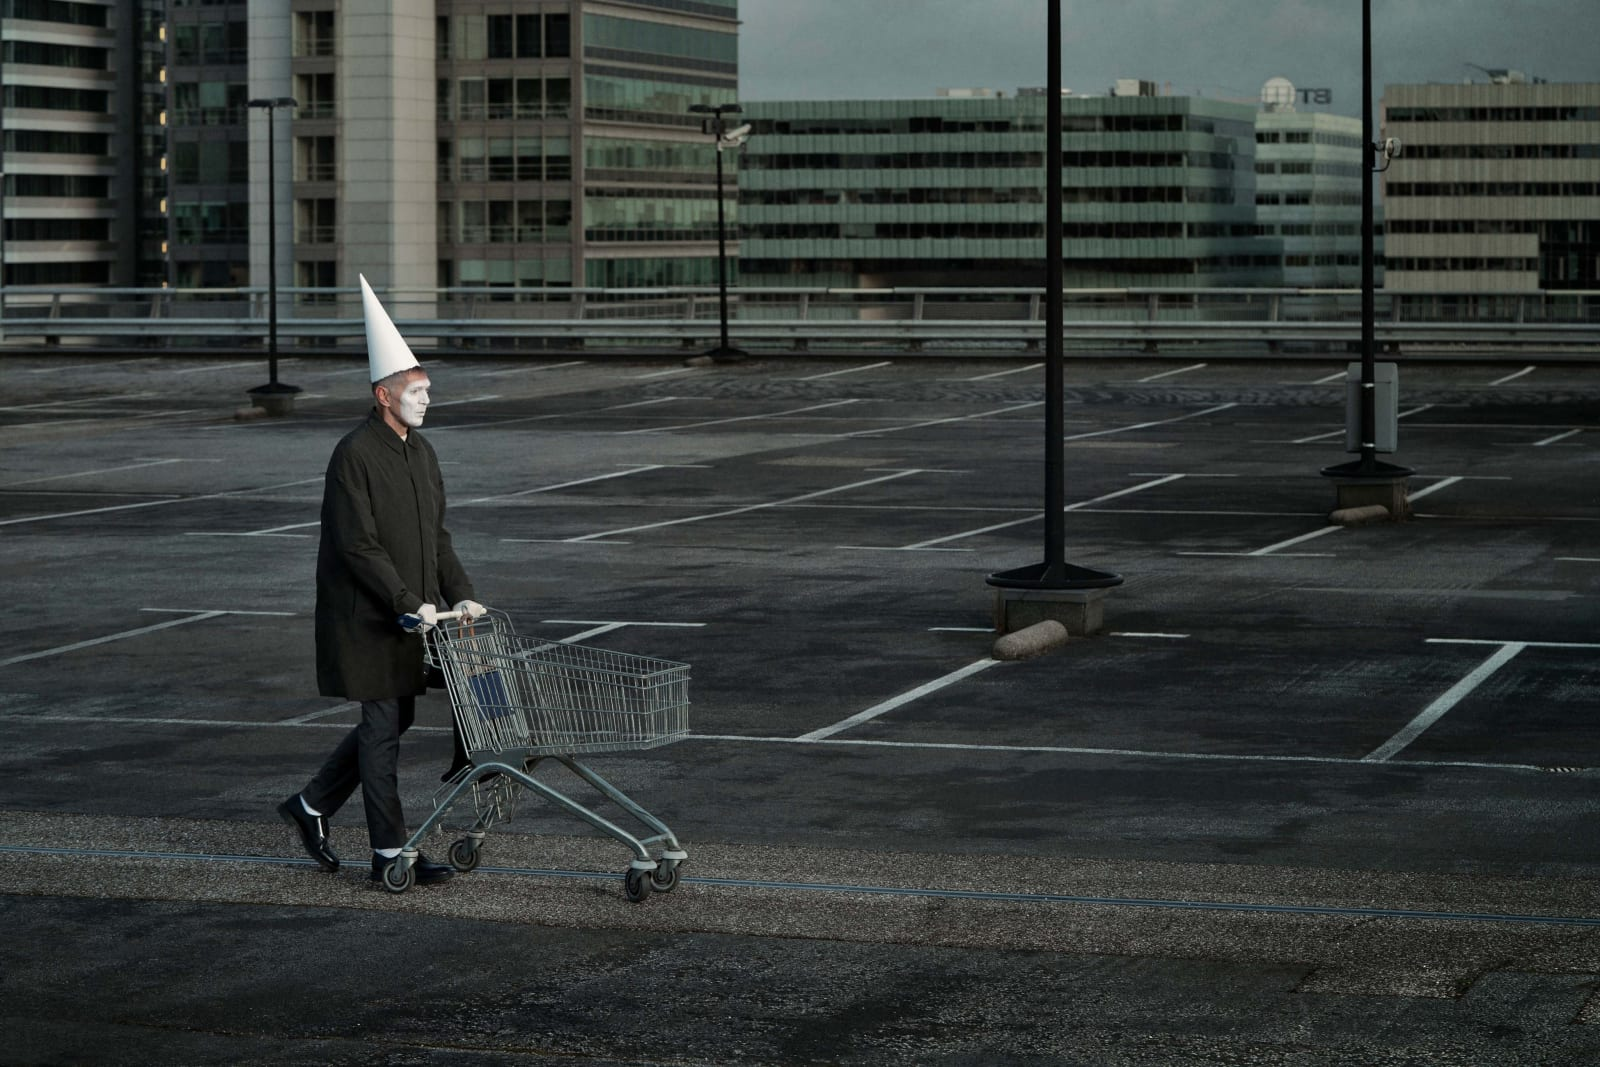 Erwin Olaf with face painted white in white dunce cap pushing an empty shopping cart through an empty parking lot, by Erwin Olaf